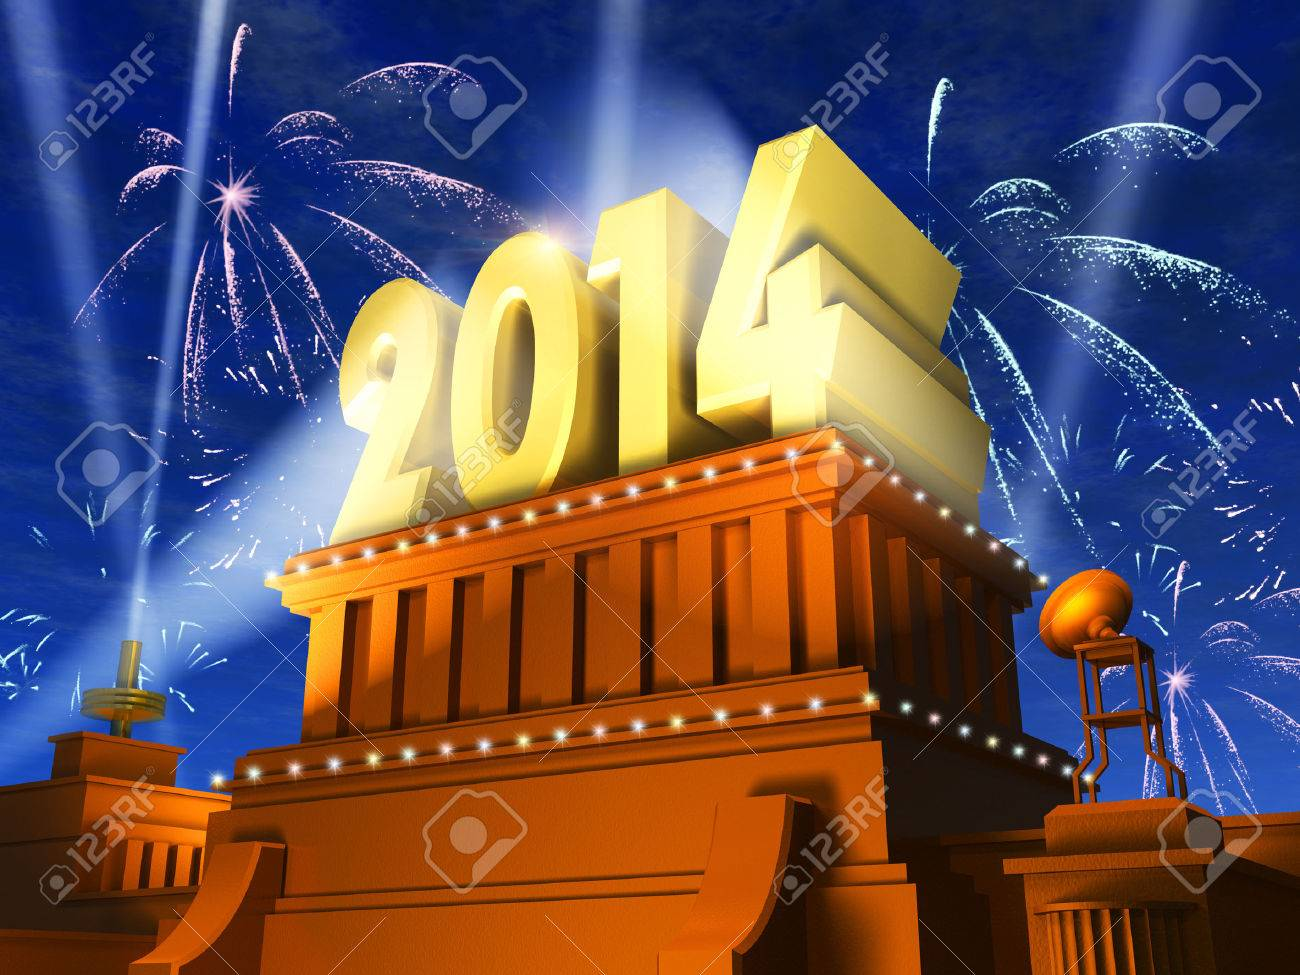 Creative New Year 2014 celebration concept  shiny golden 2014 text on pedestal at night with fireworks in cinema style Stock Photo - 23094718